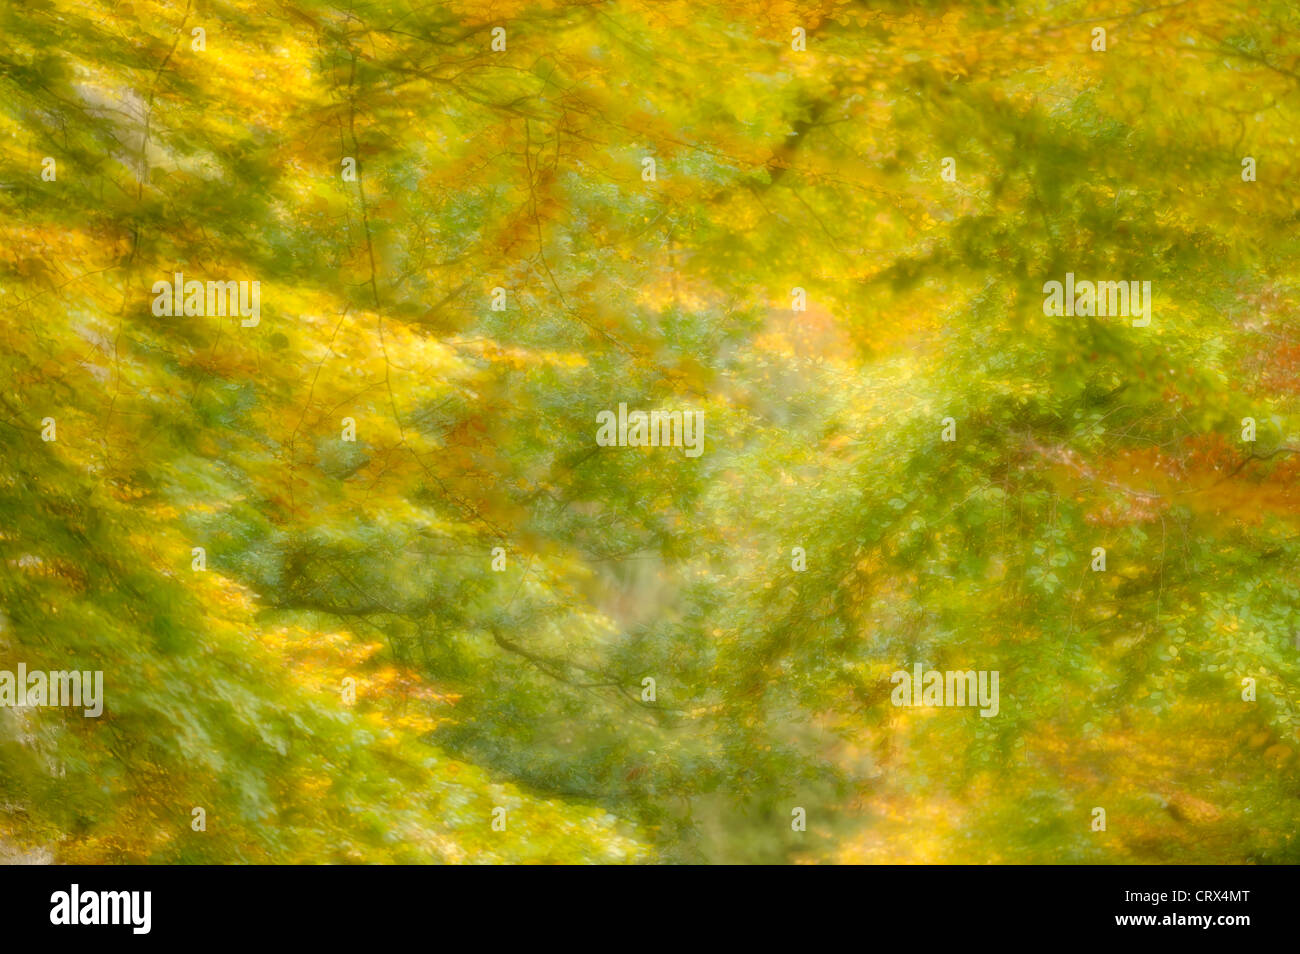 Soft focus view of autumn beech leaves (Fagus sylvatica) at Ashridge Forest In Hertfordshire, England. October. - Stock Image